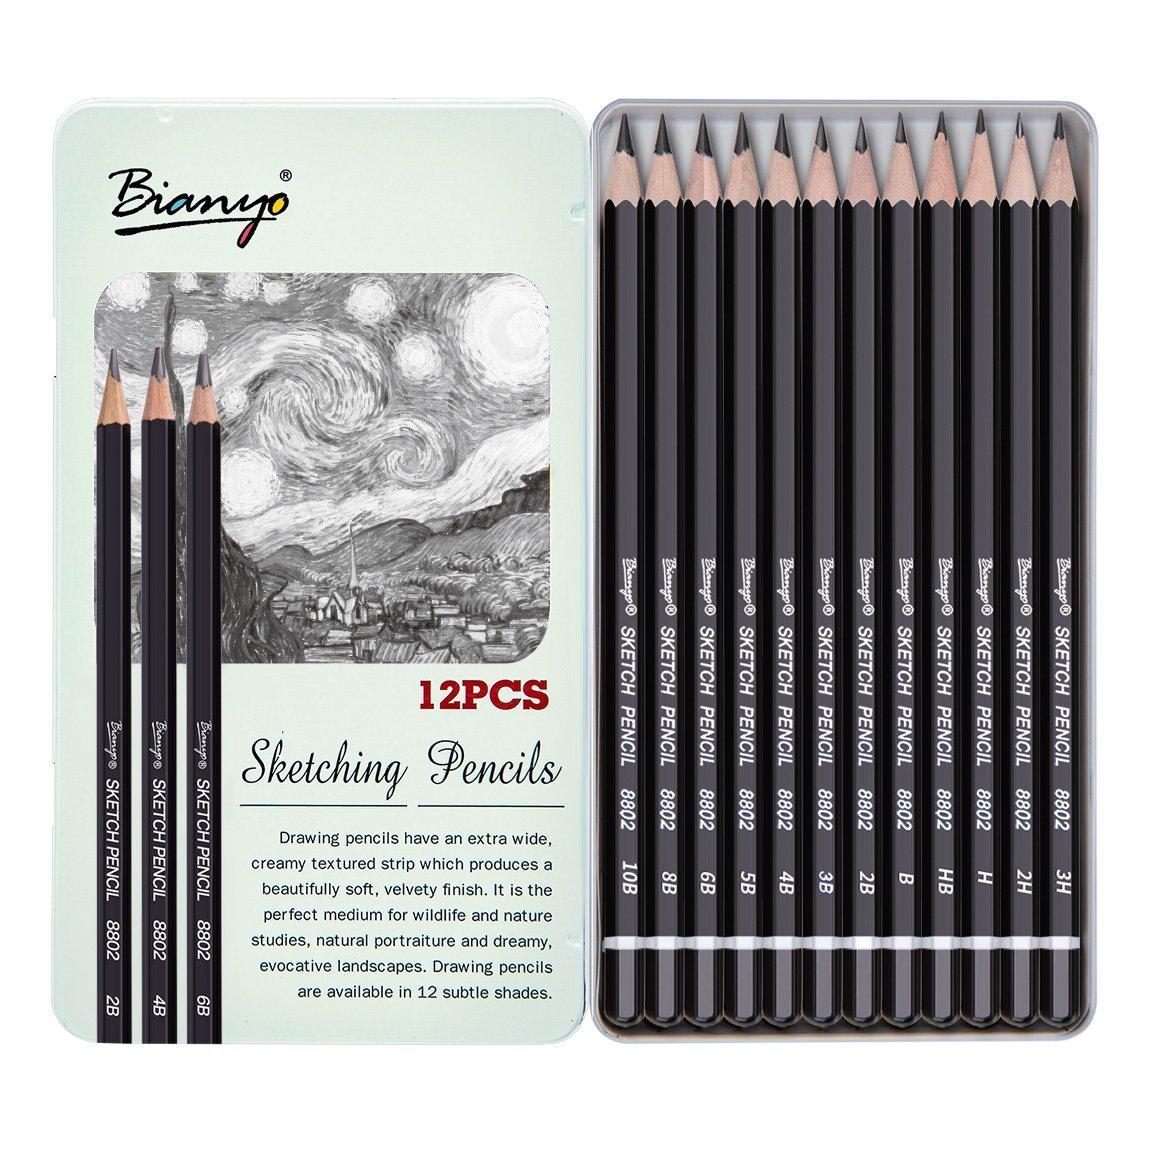 Bianyo artist quality fine art drawing and sketching pencils 3h 2h h hb b 2b 3b 4b 5b 6b 8b 10b 12 piece set amazon in office products